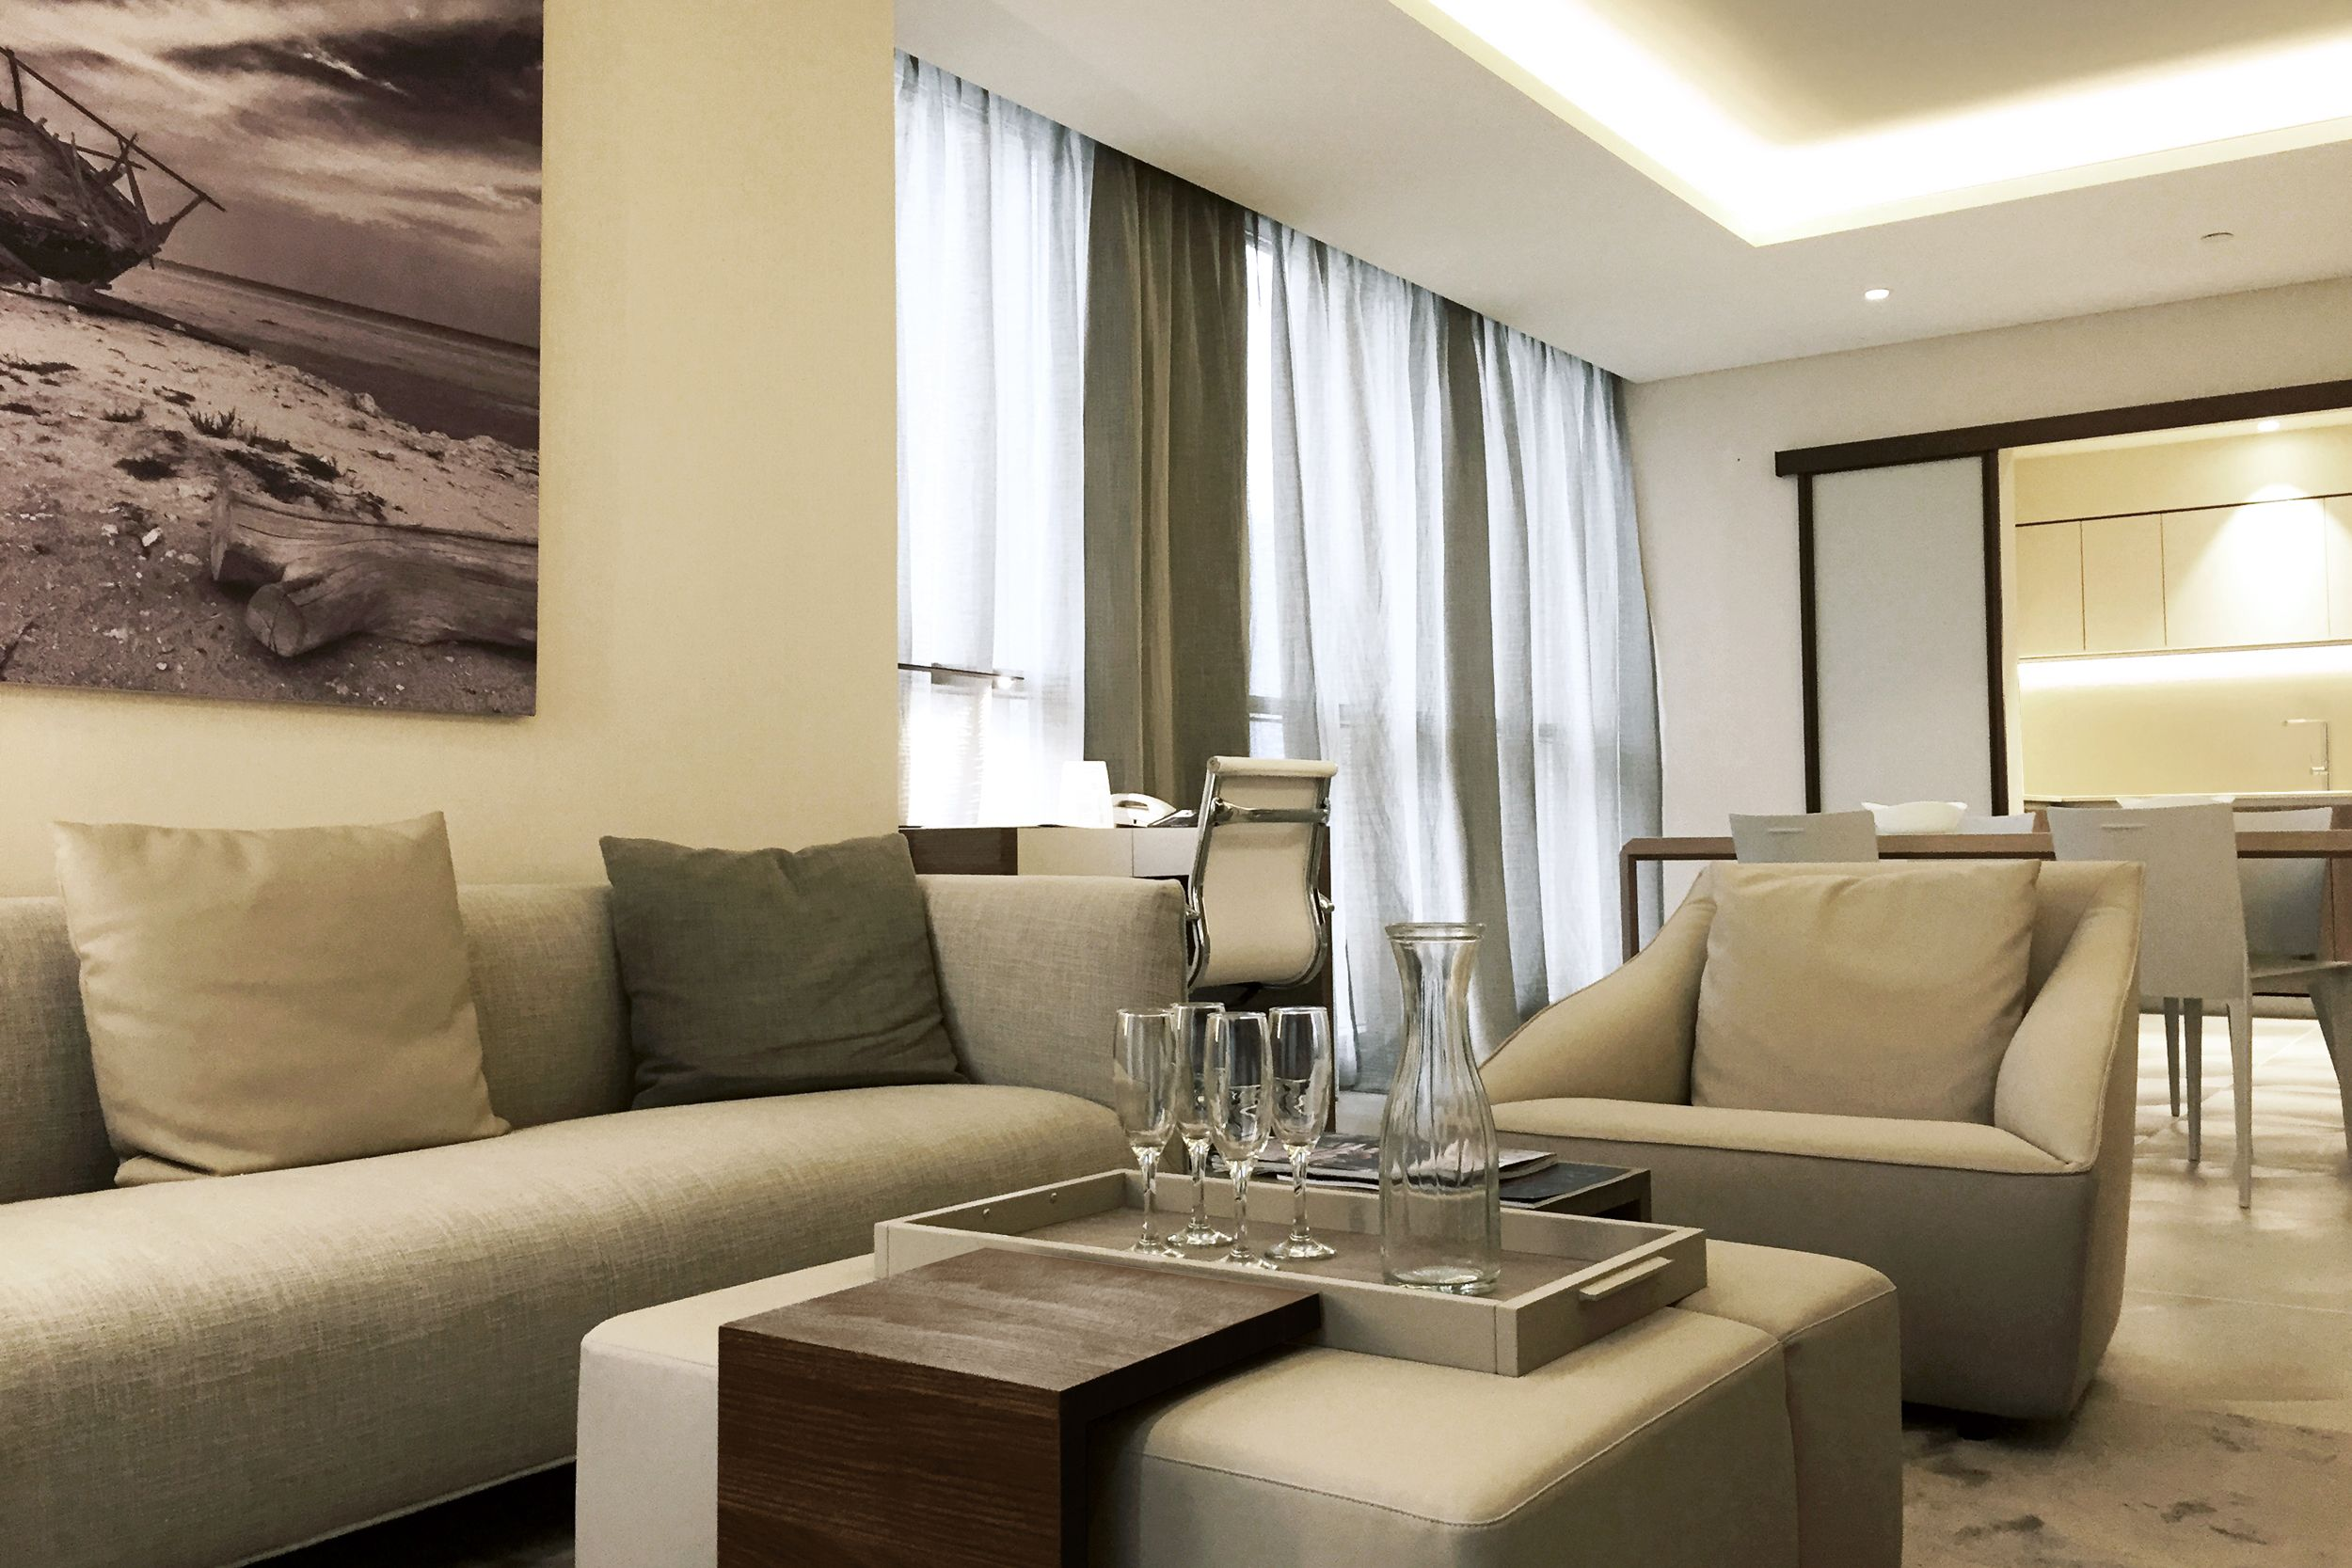 hotel rooms interior design and ideas chinese modern minimalist